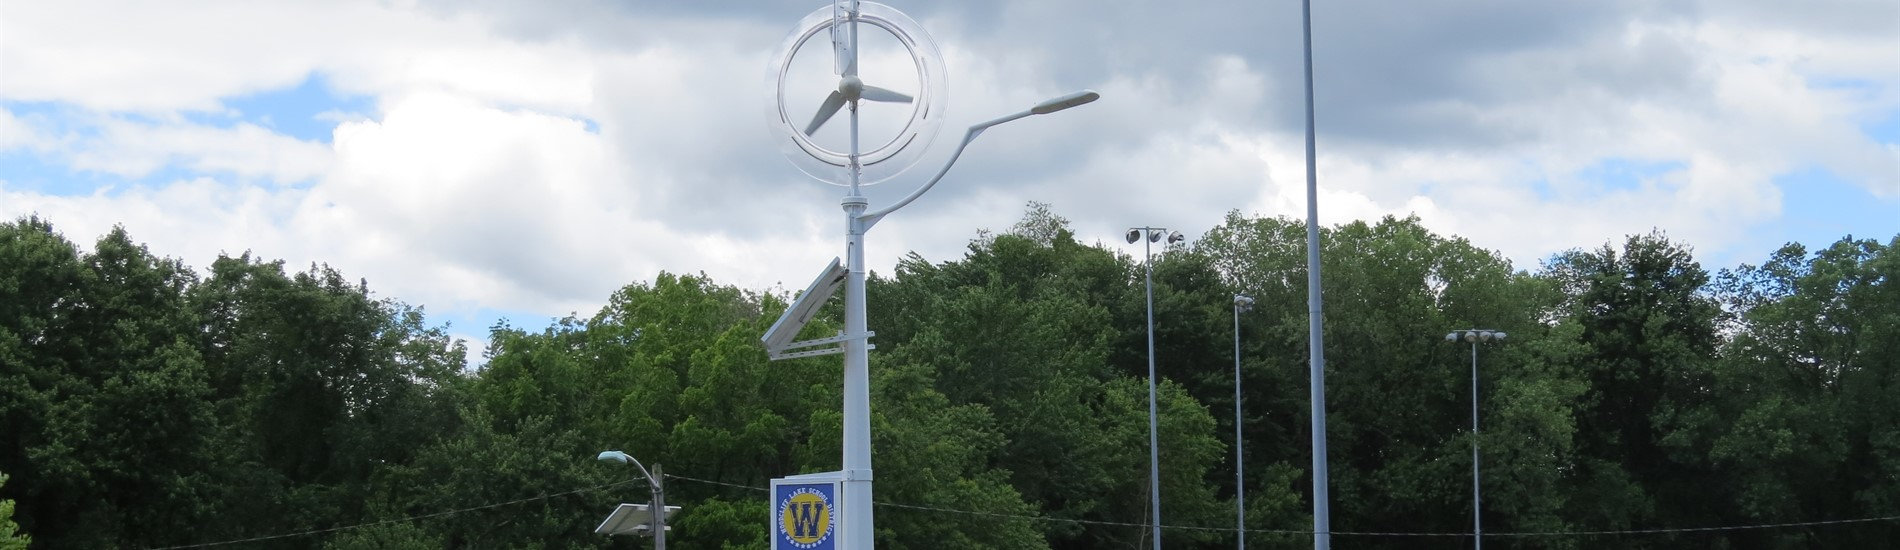 Our new wind turbine